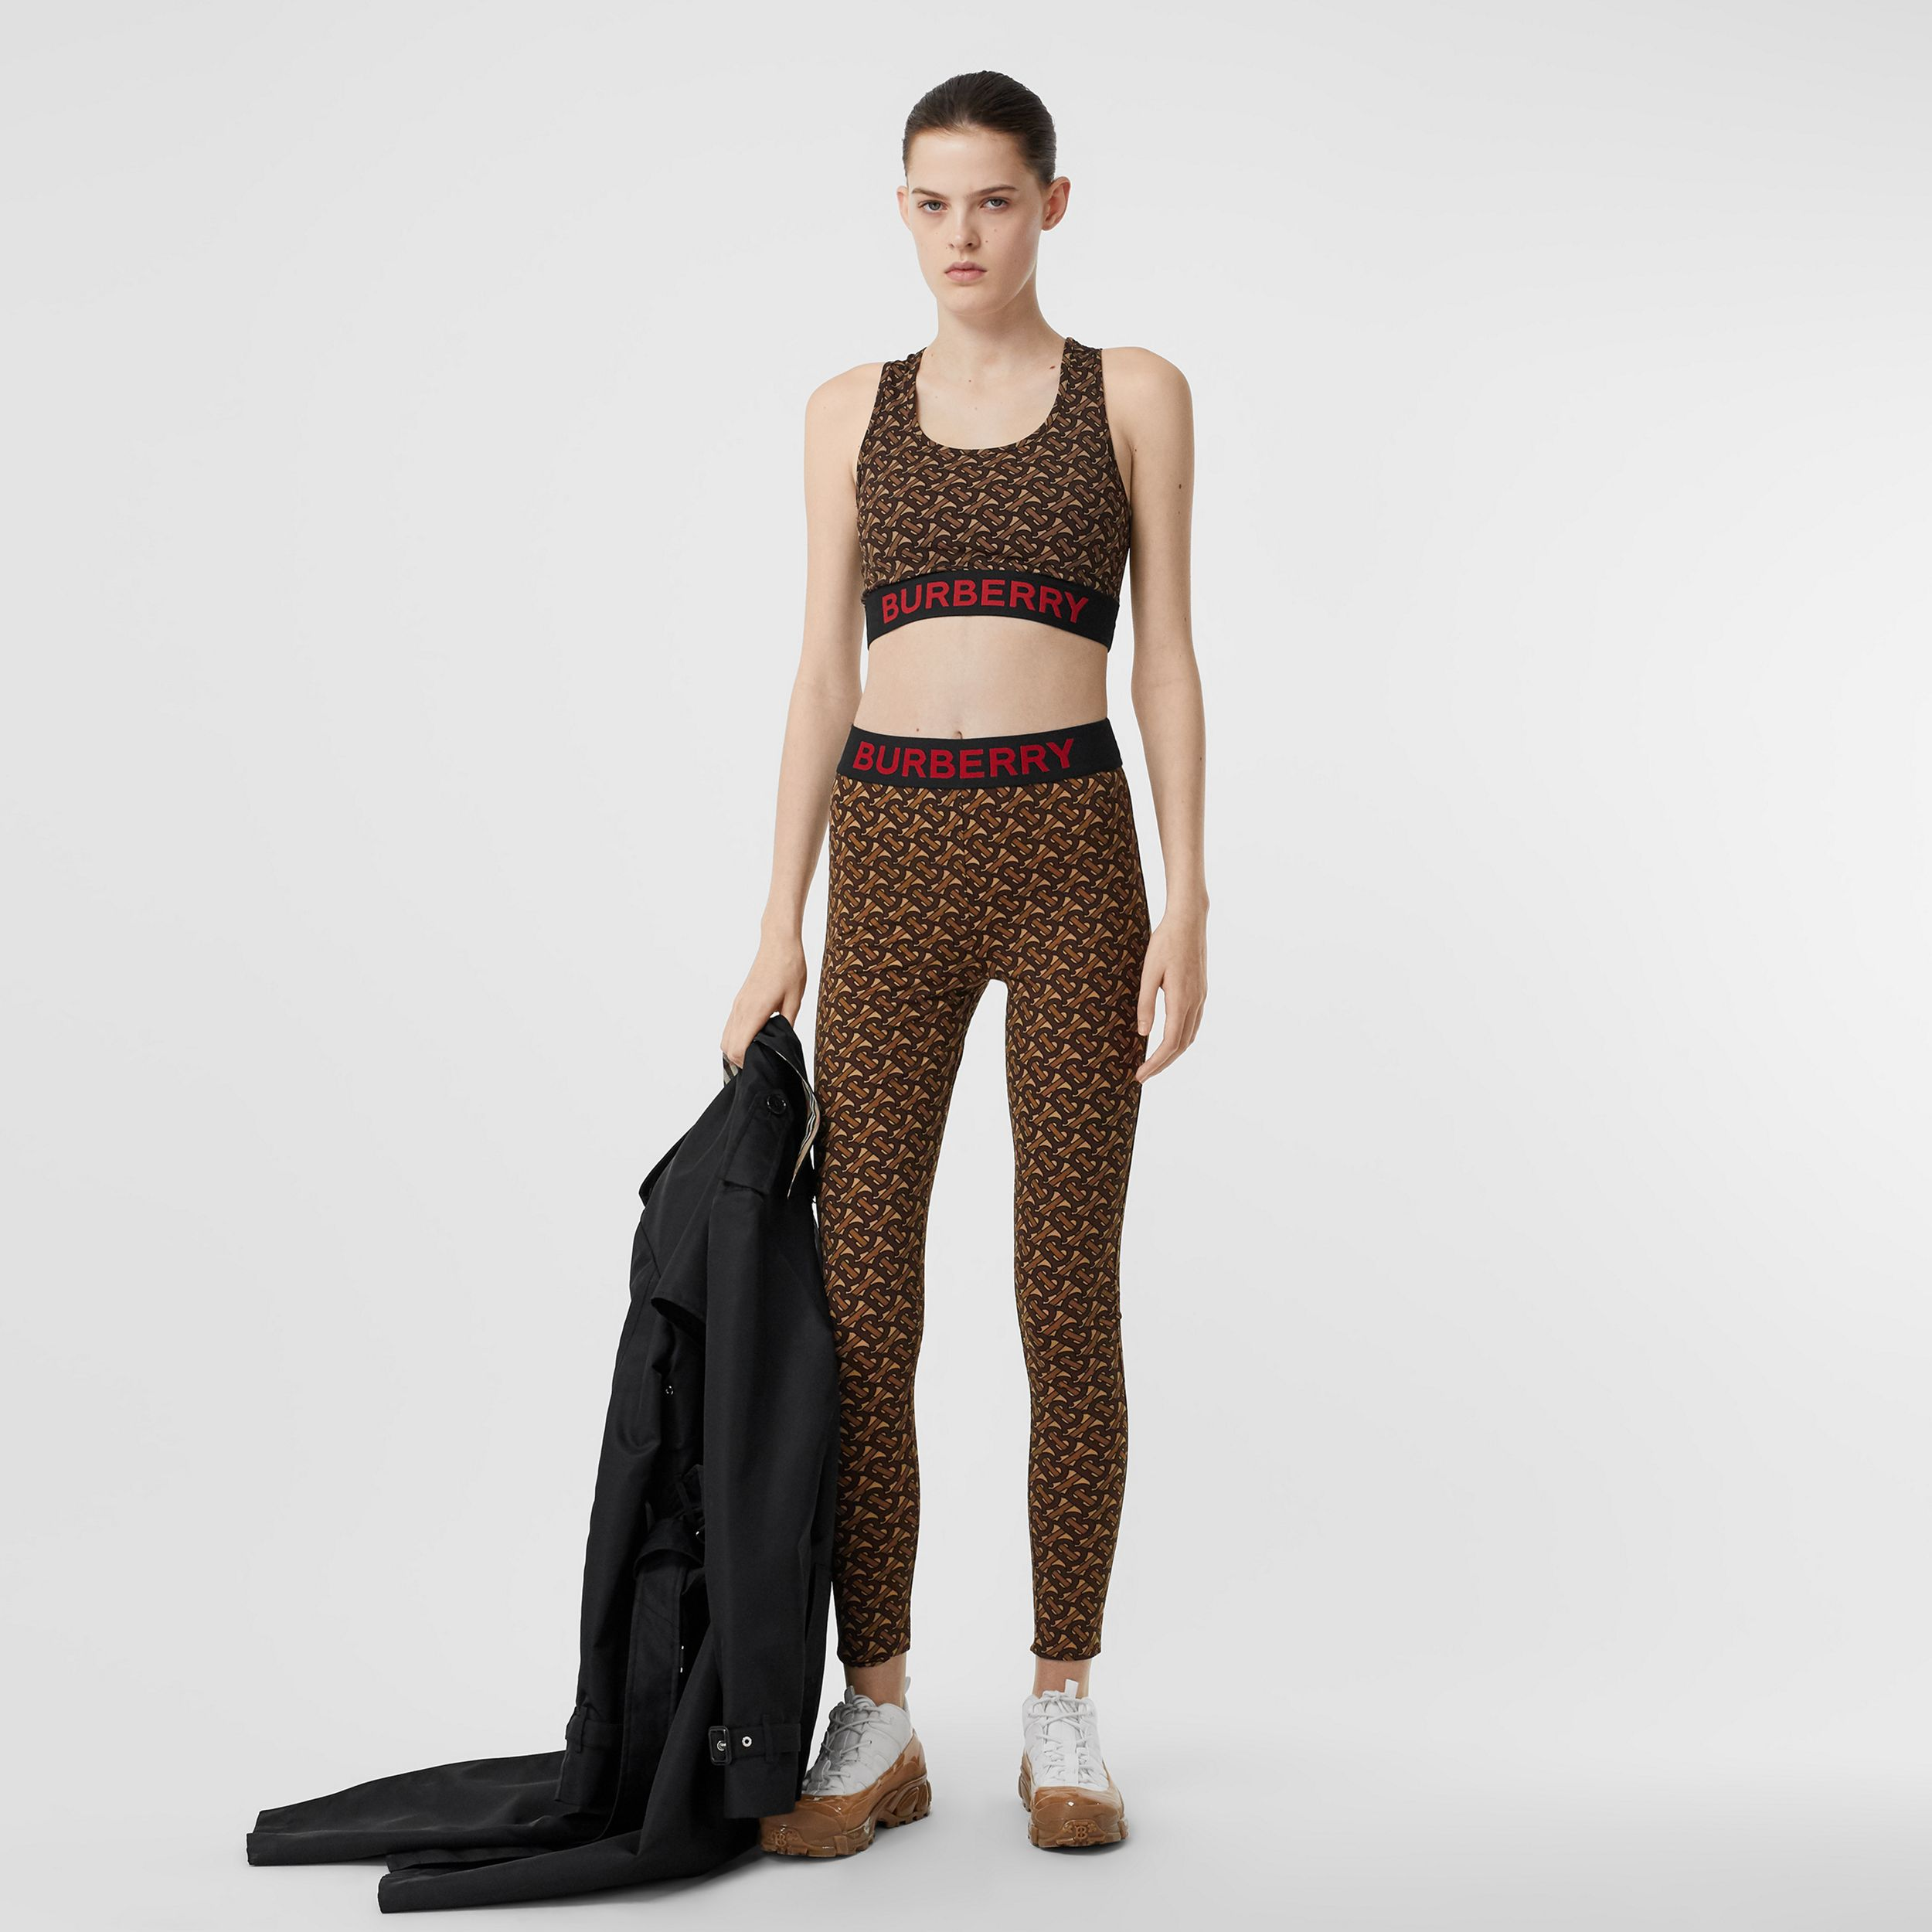 Monogram Print Stretch Jersey Cropped Top in Bridle Brown - Women | Burberry United States - 1